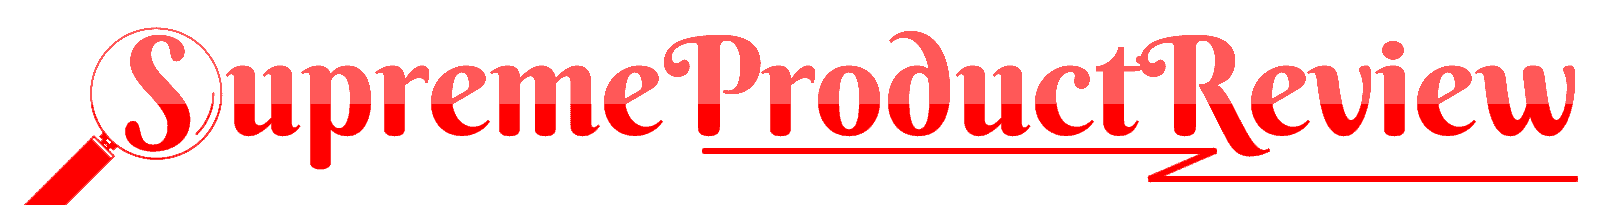 SupremeProductReview